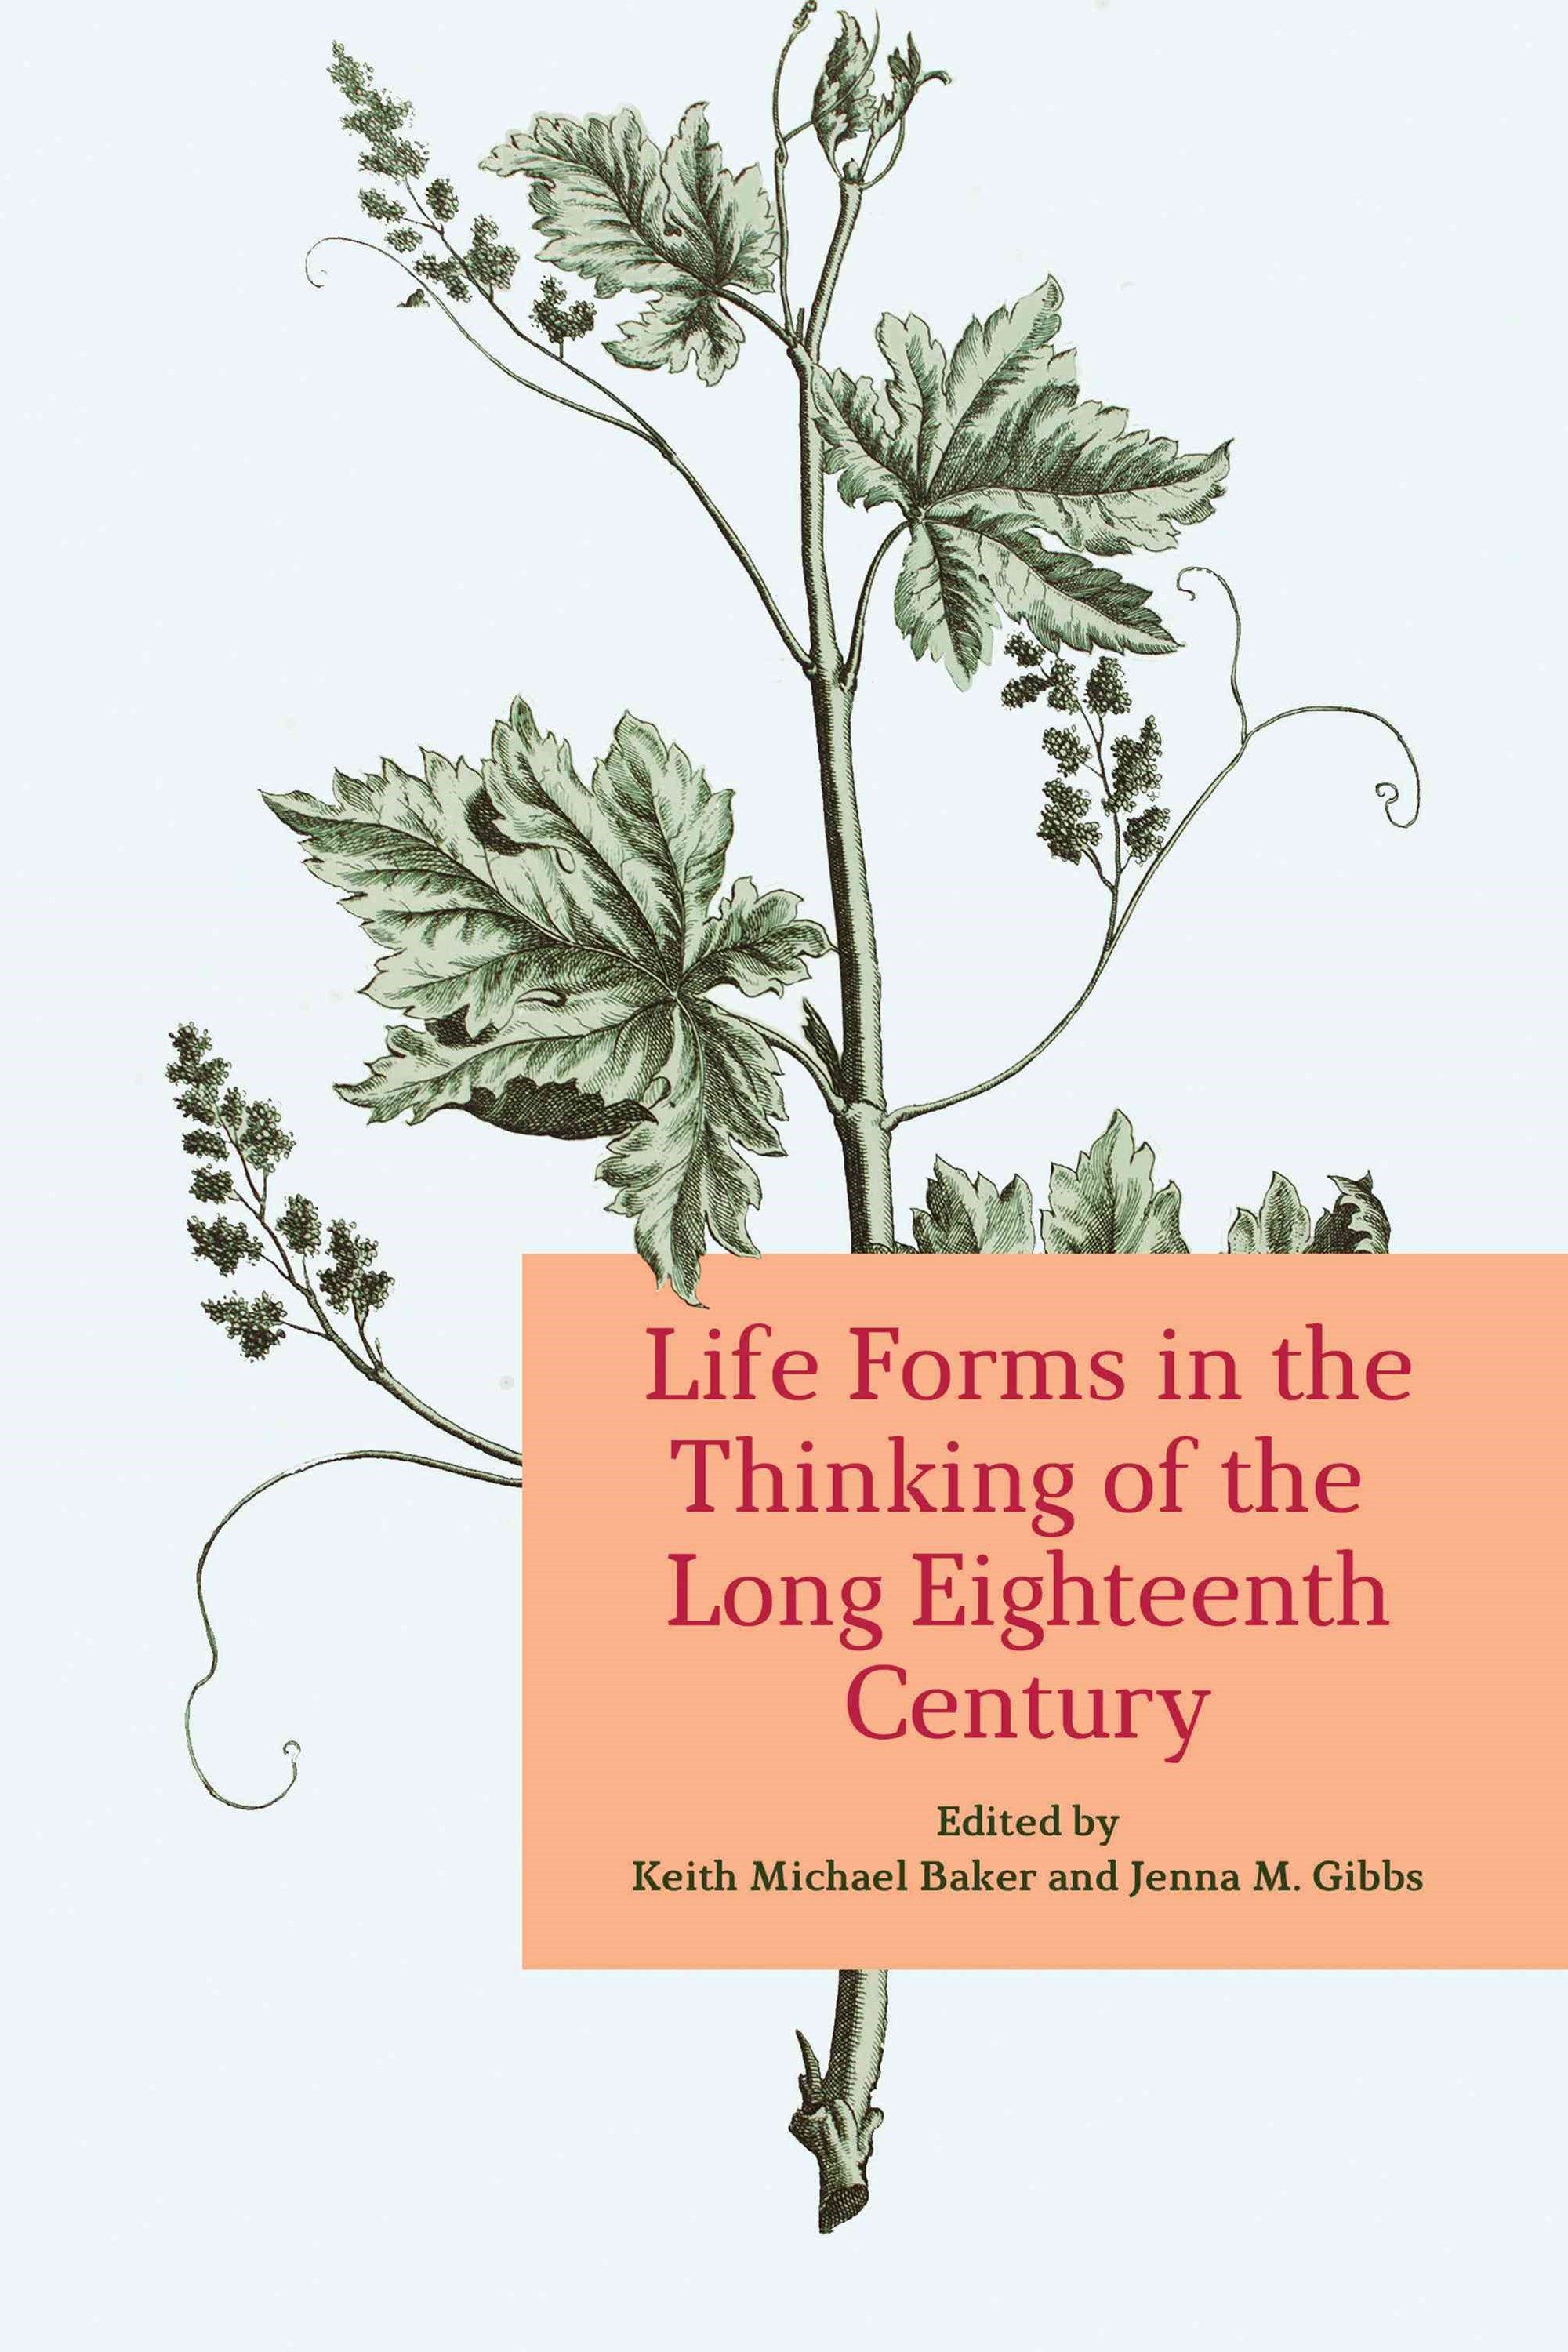 Life Forms in the Thinking of the Long Eighteenth Century